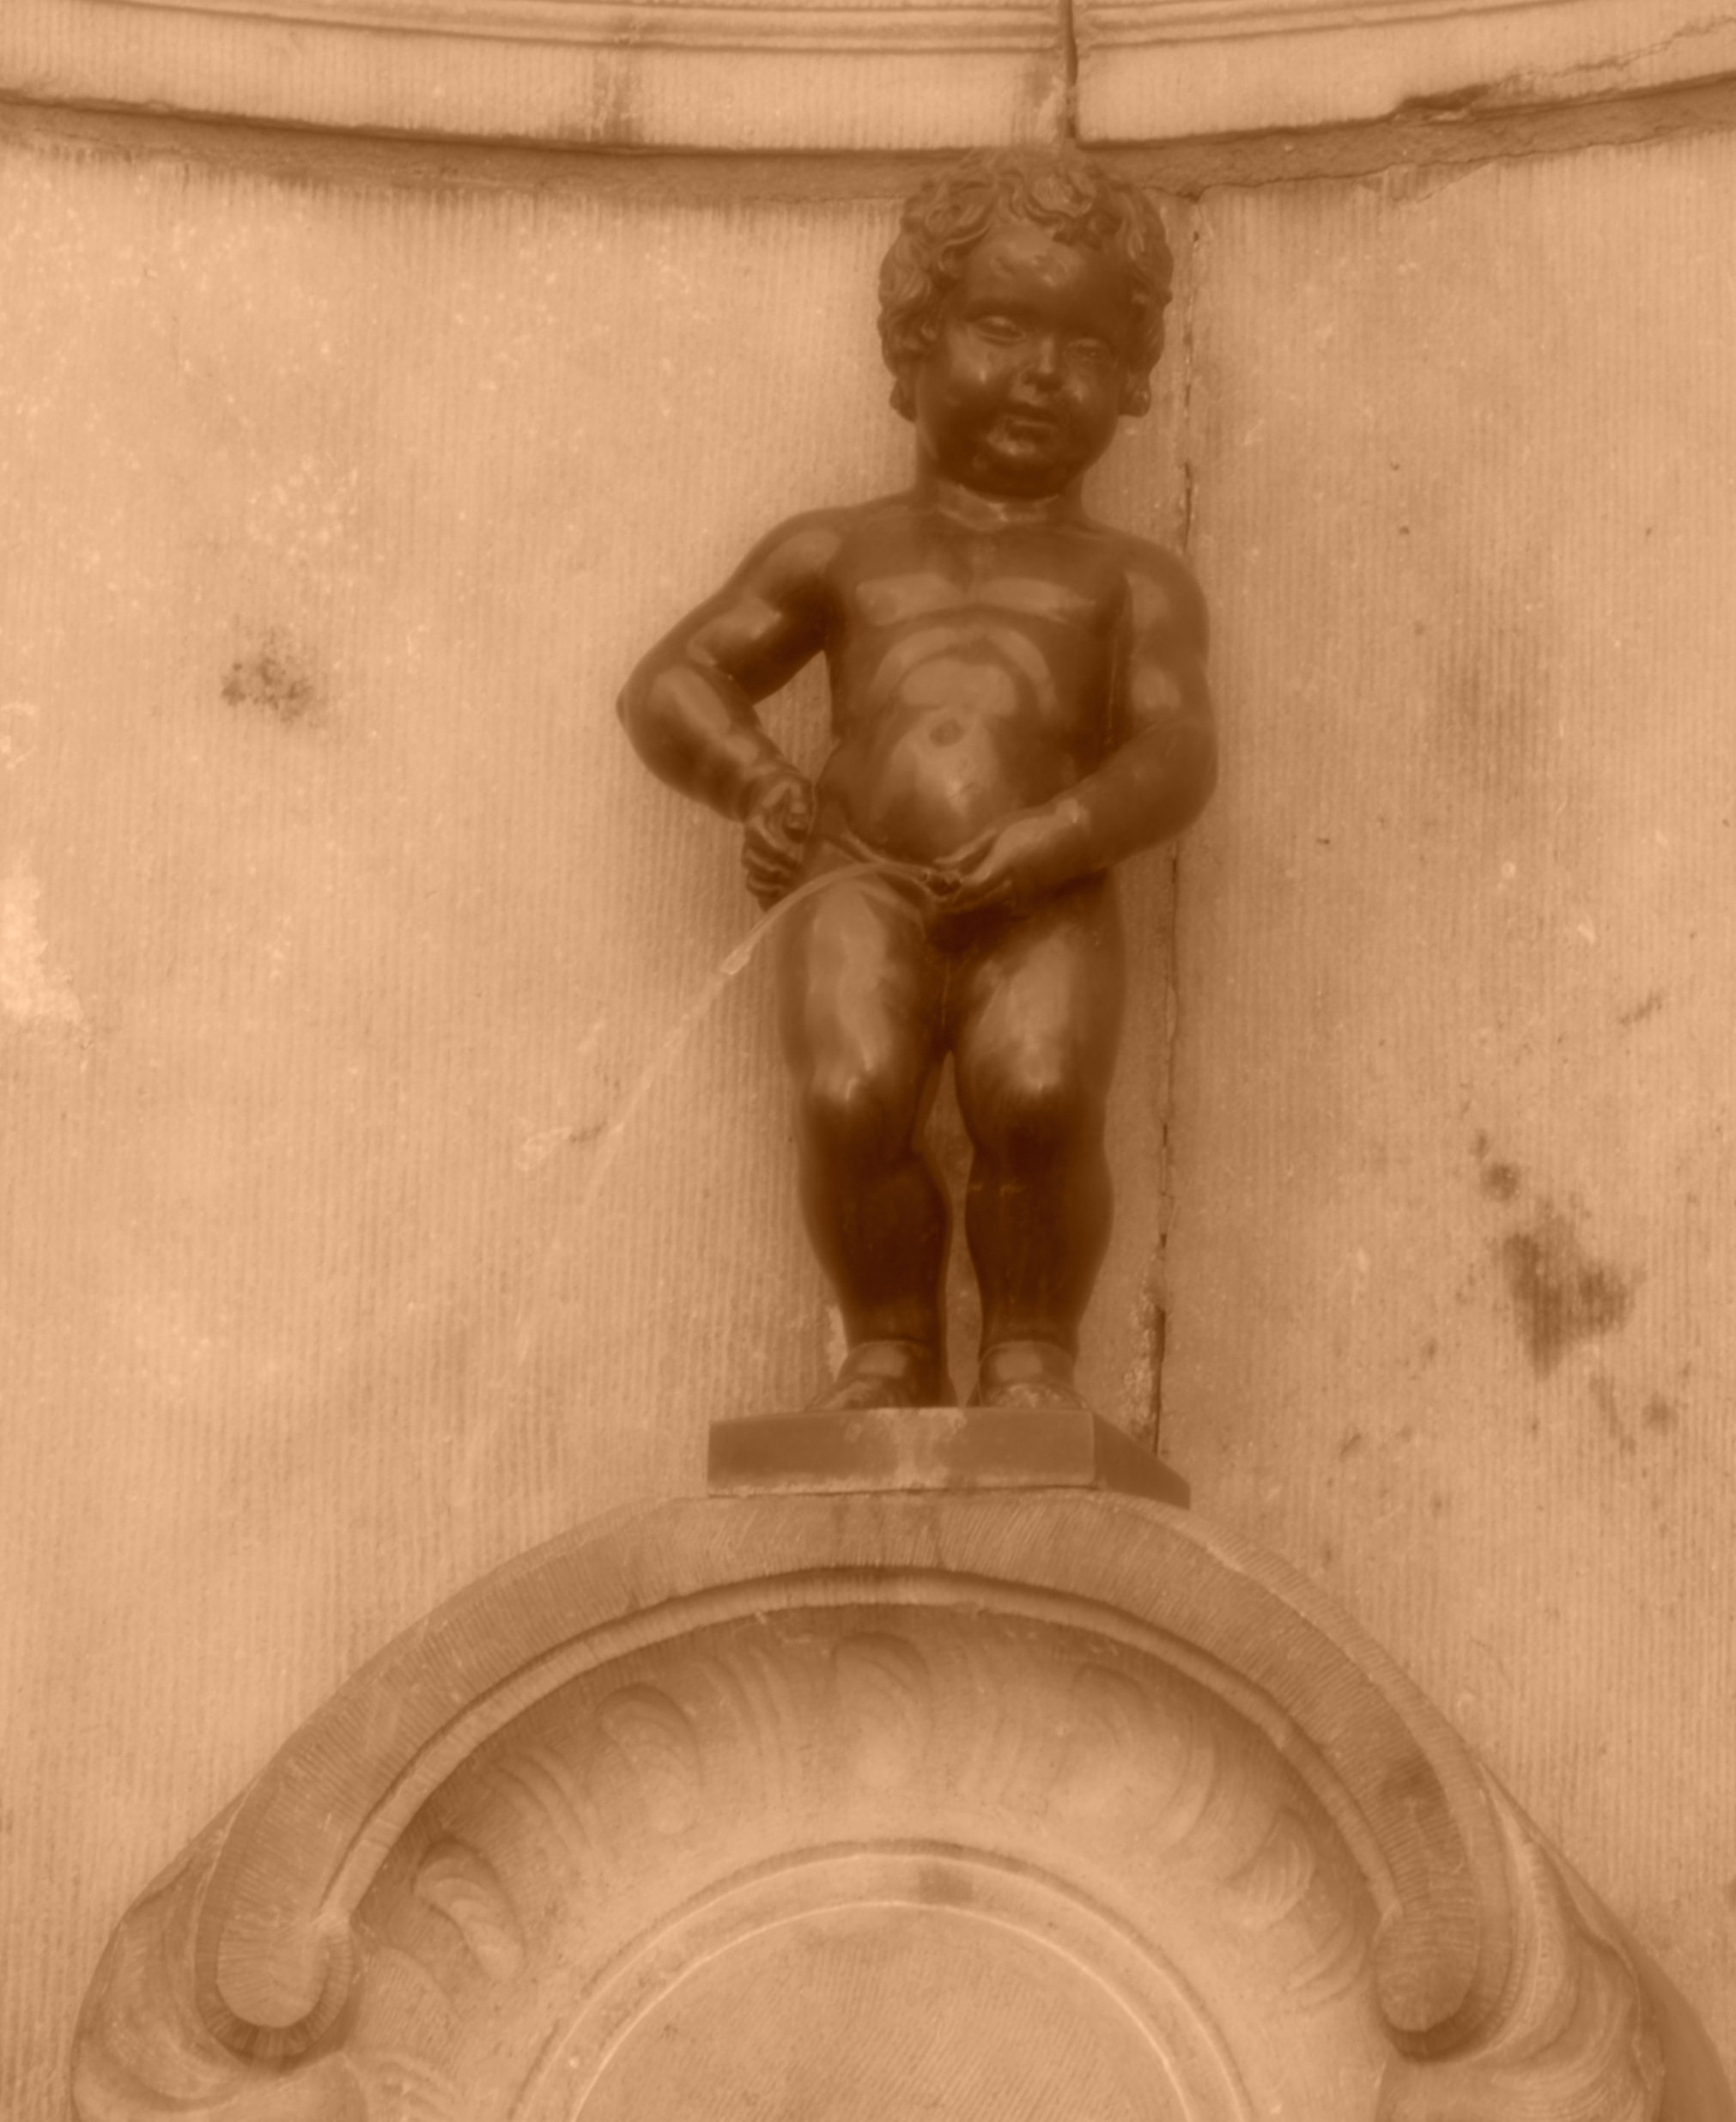 Manneken Pis (Candy Knight's photo)